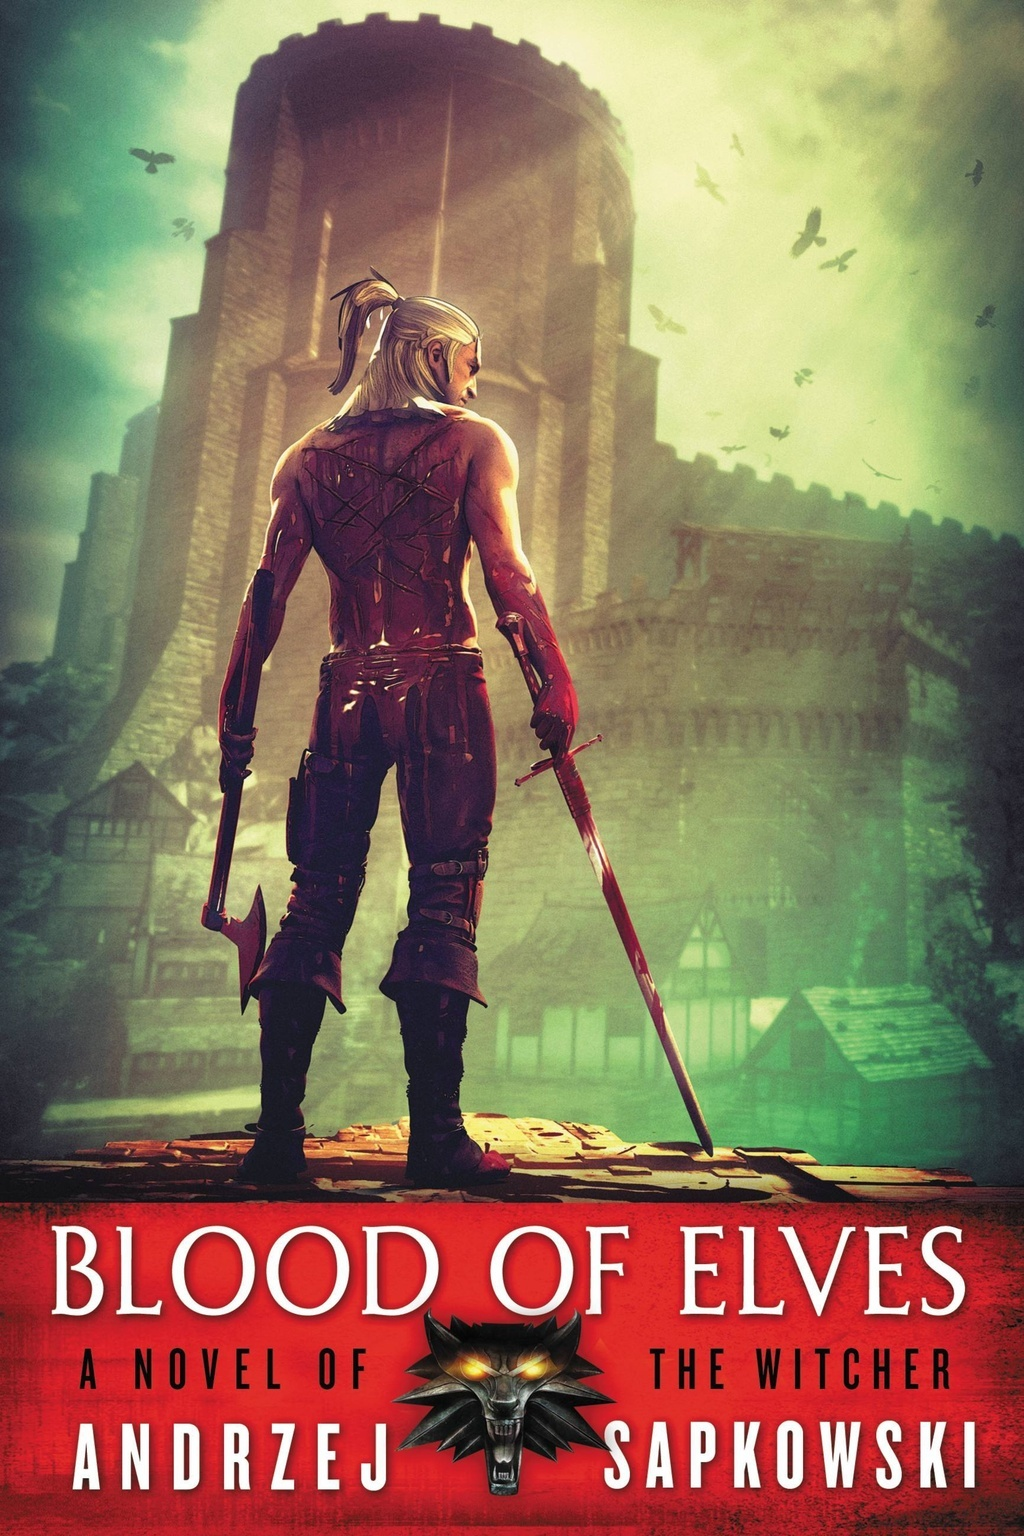 The Blood of Elves (The Witcher #2) (US Ed.) by Andrzej Sapkowski image